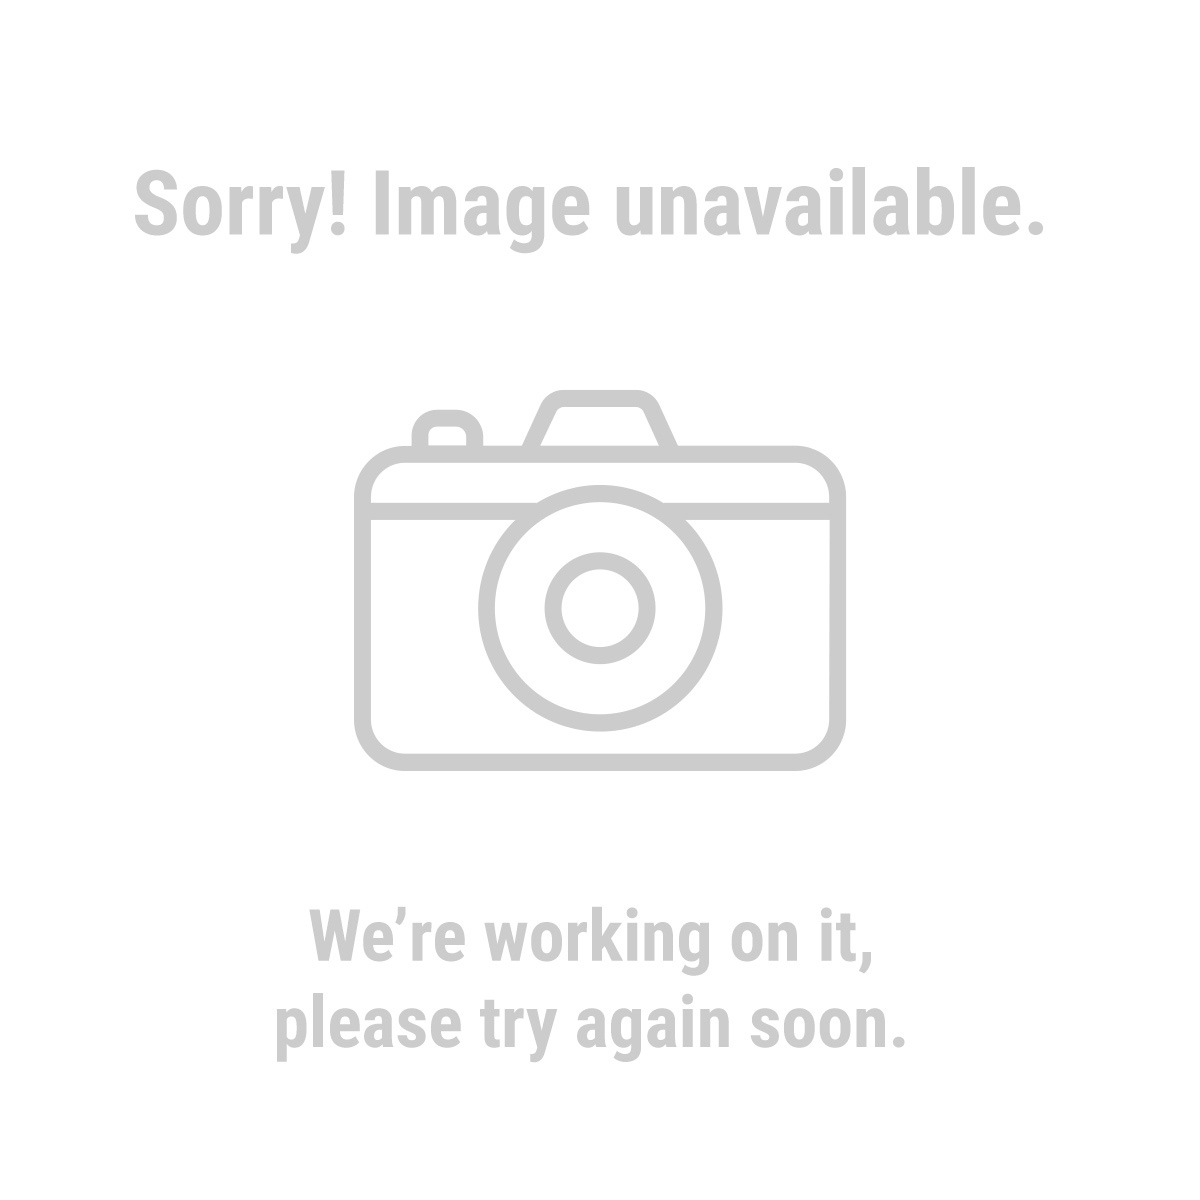 Admiral® 62742 7-1/4 in., 24T  Framing Circular Saw Blade 3 Pack